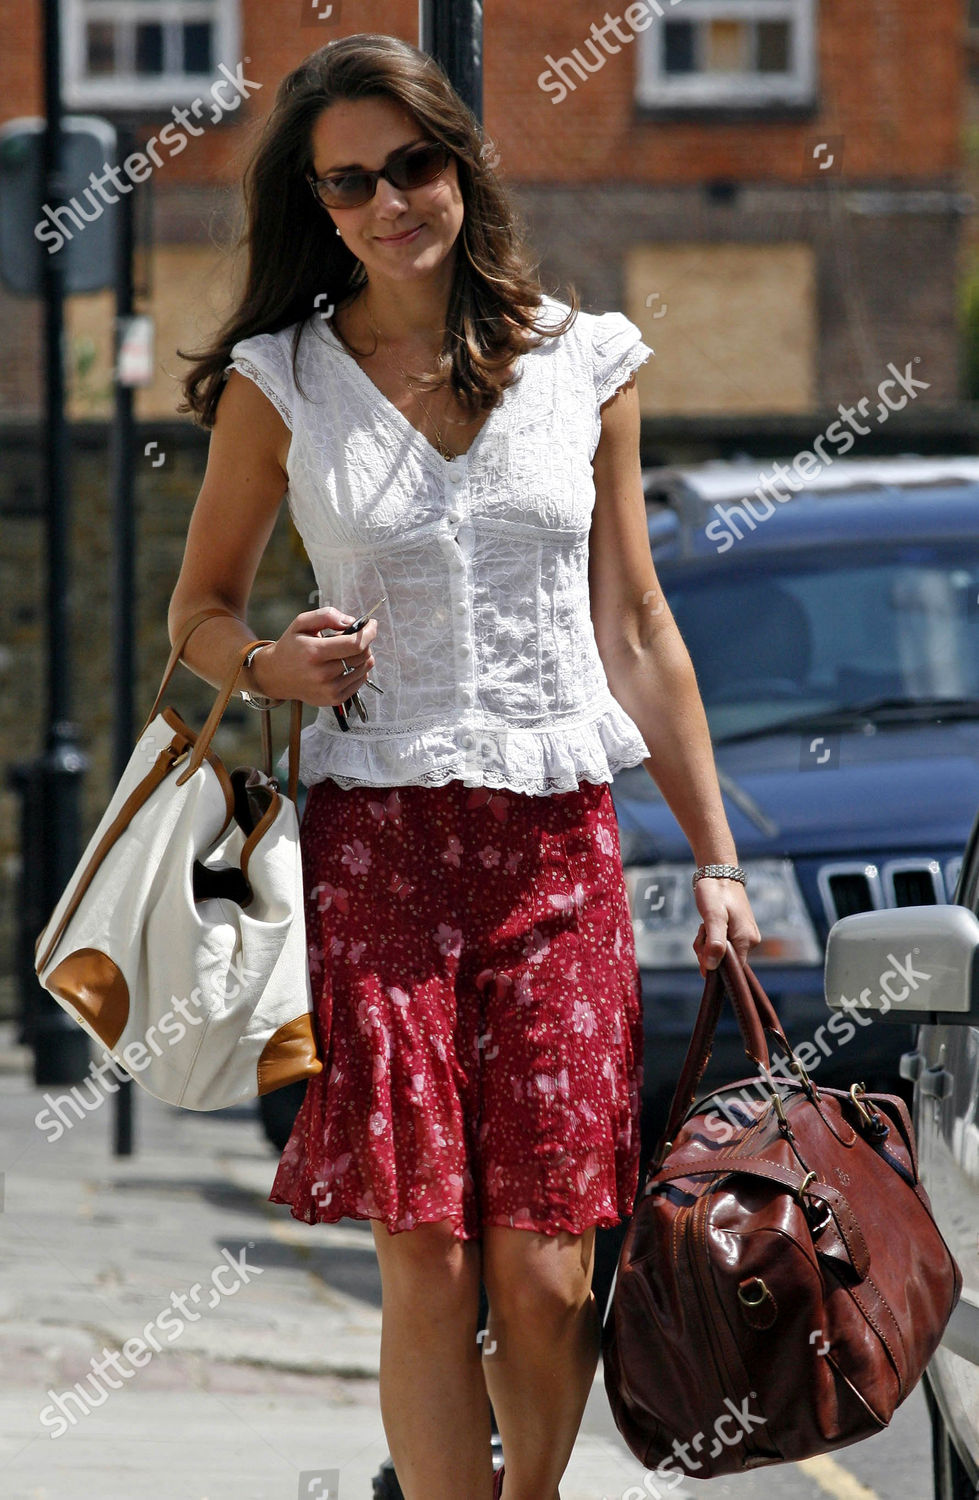 b6a76cb853019 Kate Middleton walking back her car after Editorial Stock Photo ...